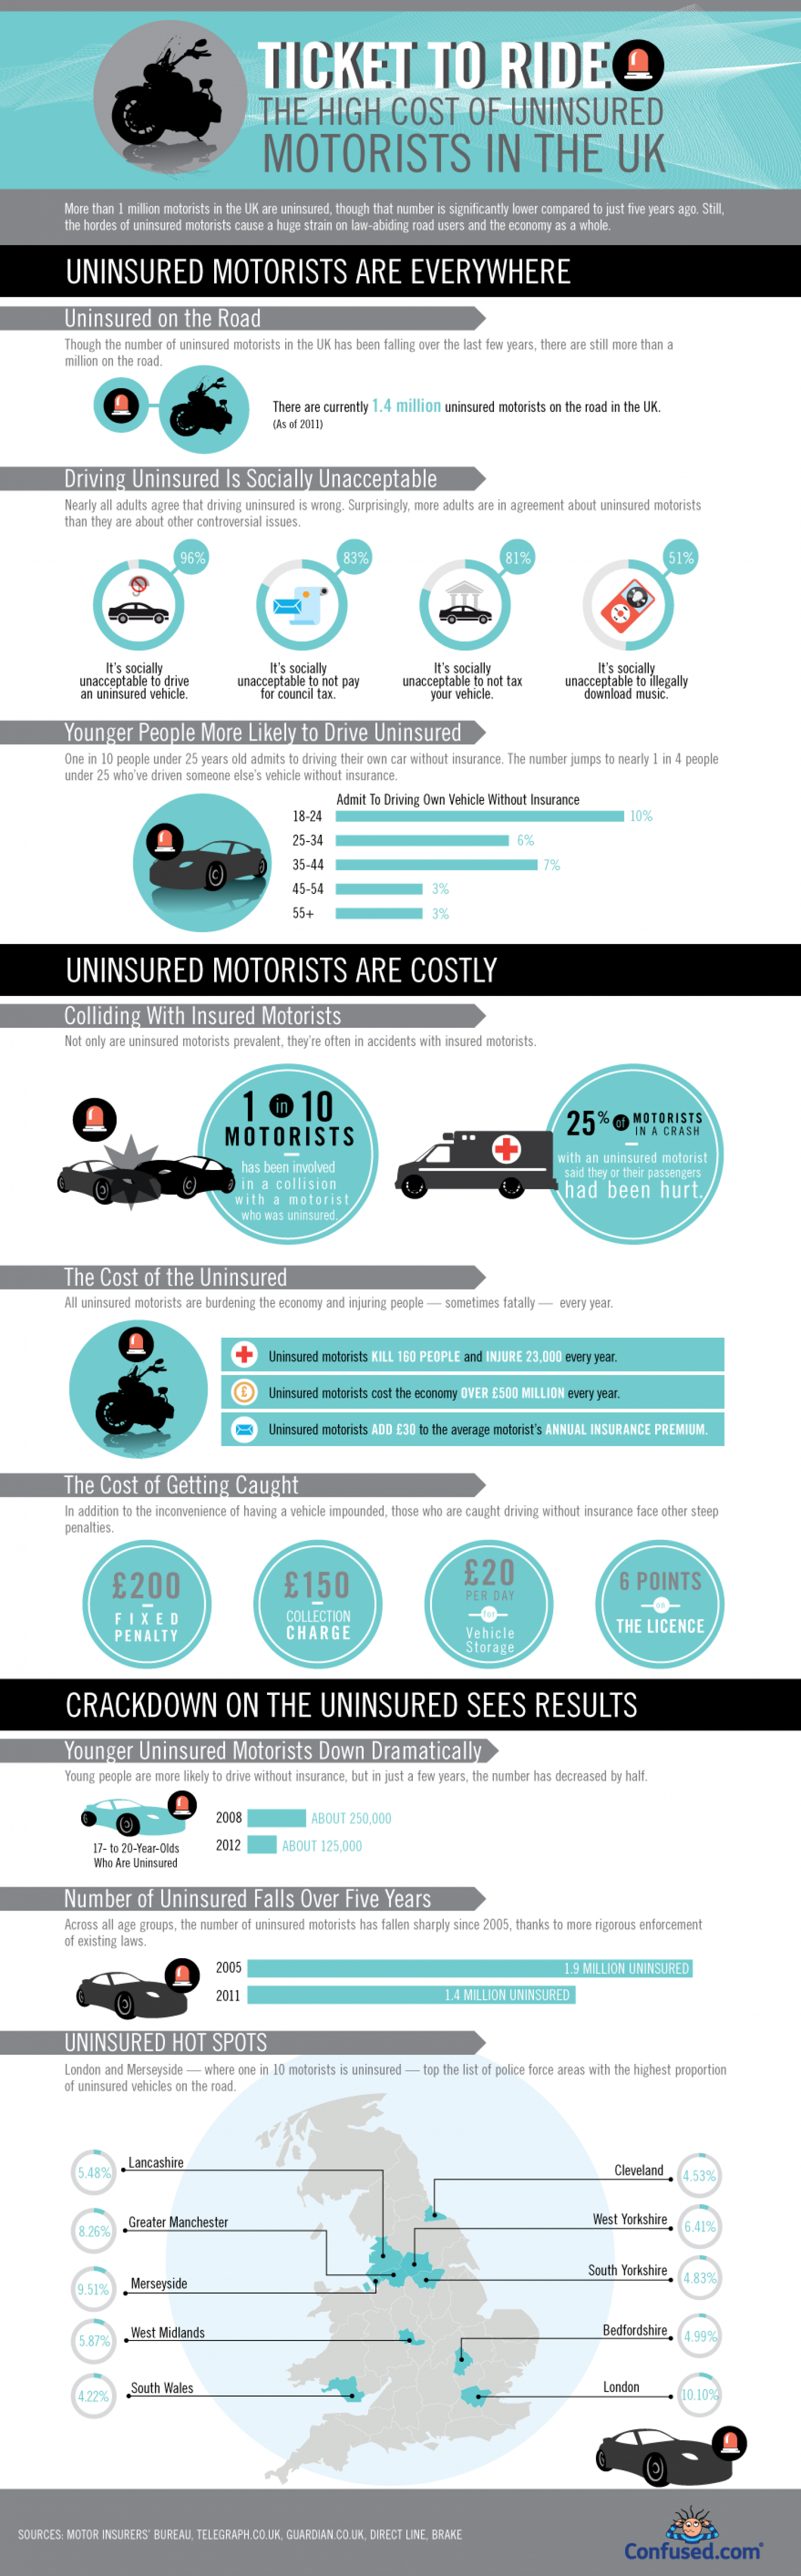 Ticket to Ride: The Cost of Uninsured Motorists Infographic